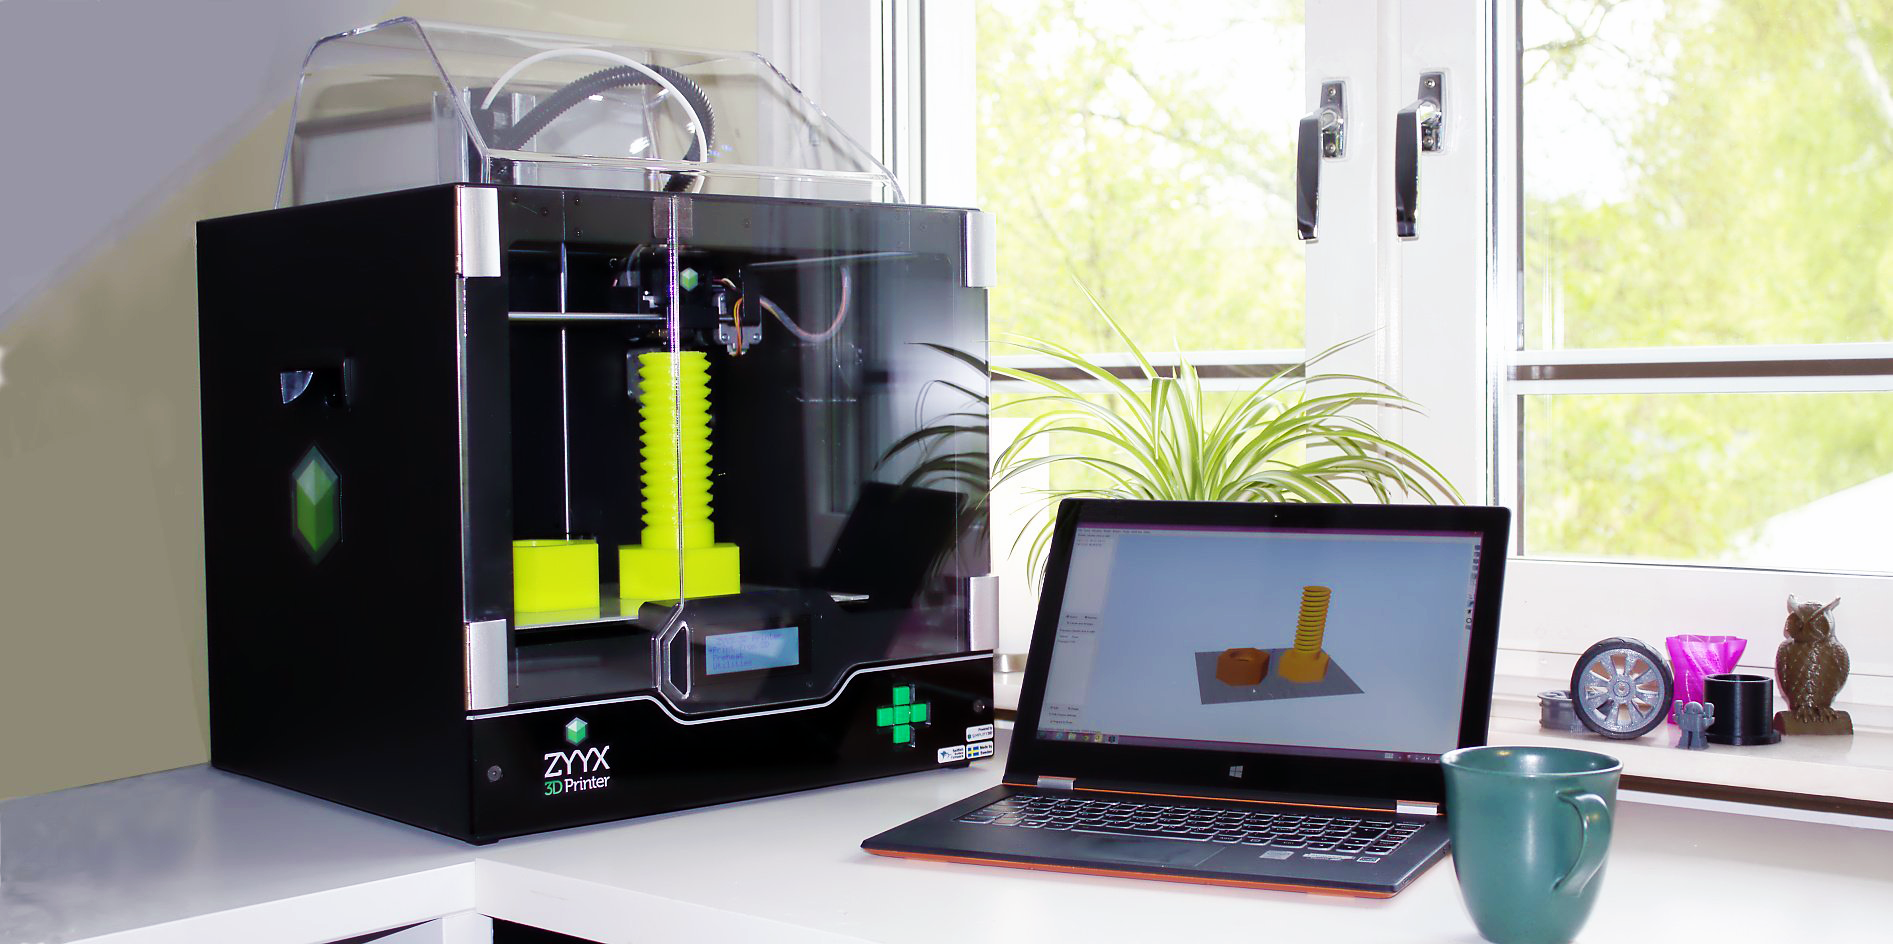 ZYYX 3D Printer Simplifies Printing